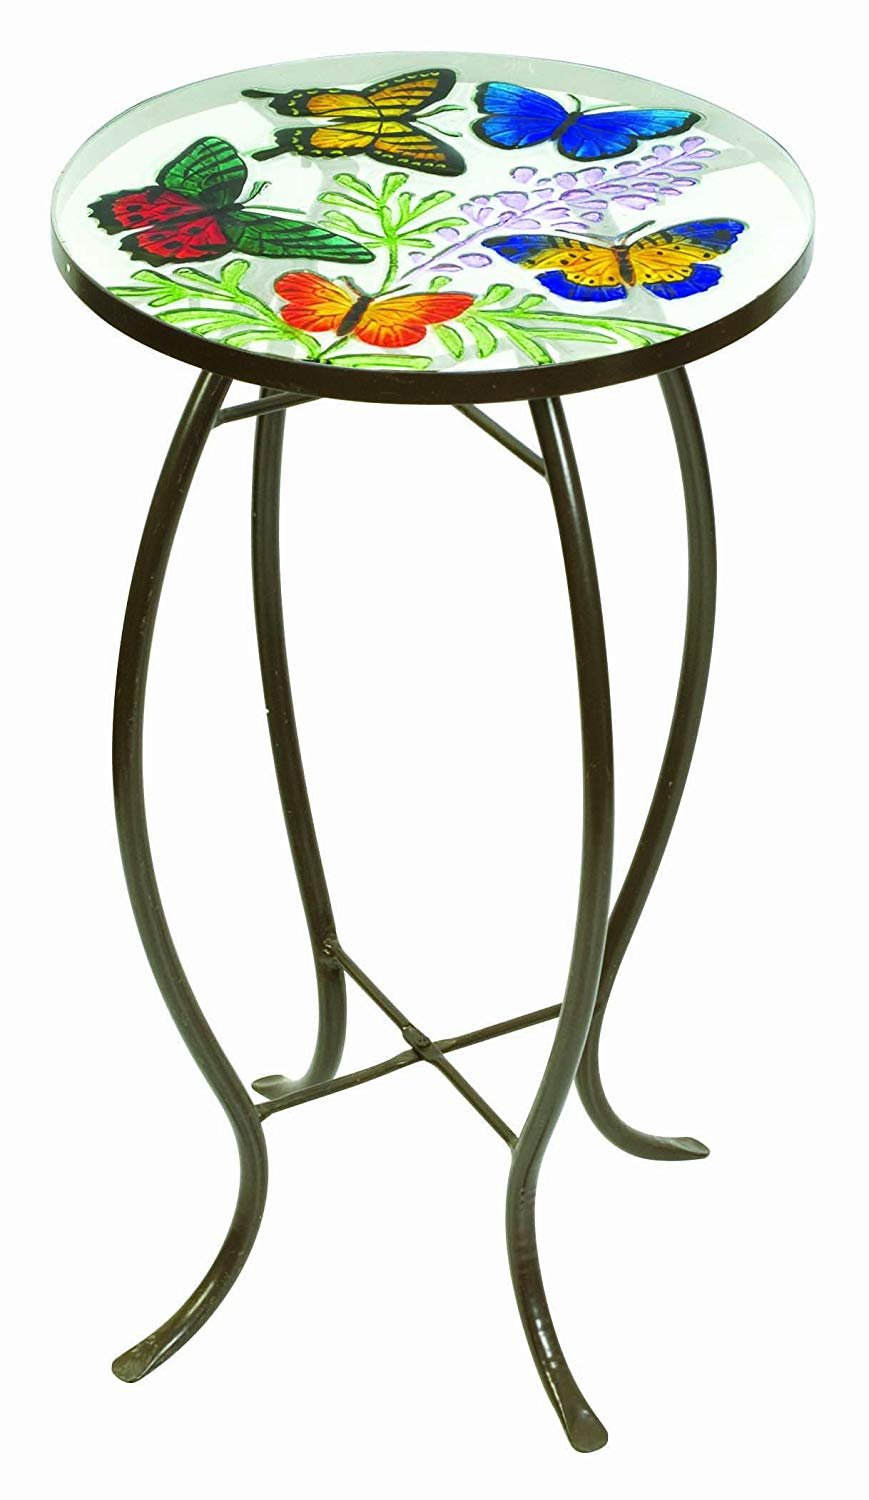 patio table side with ice bucket folding wood umbrella mosaic top small glass accent kohls full size square concrete coffee narrow ashley furniture end tables drawers target vases